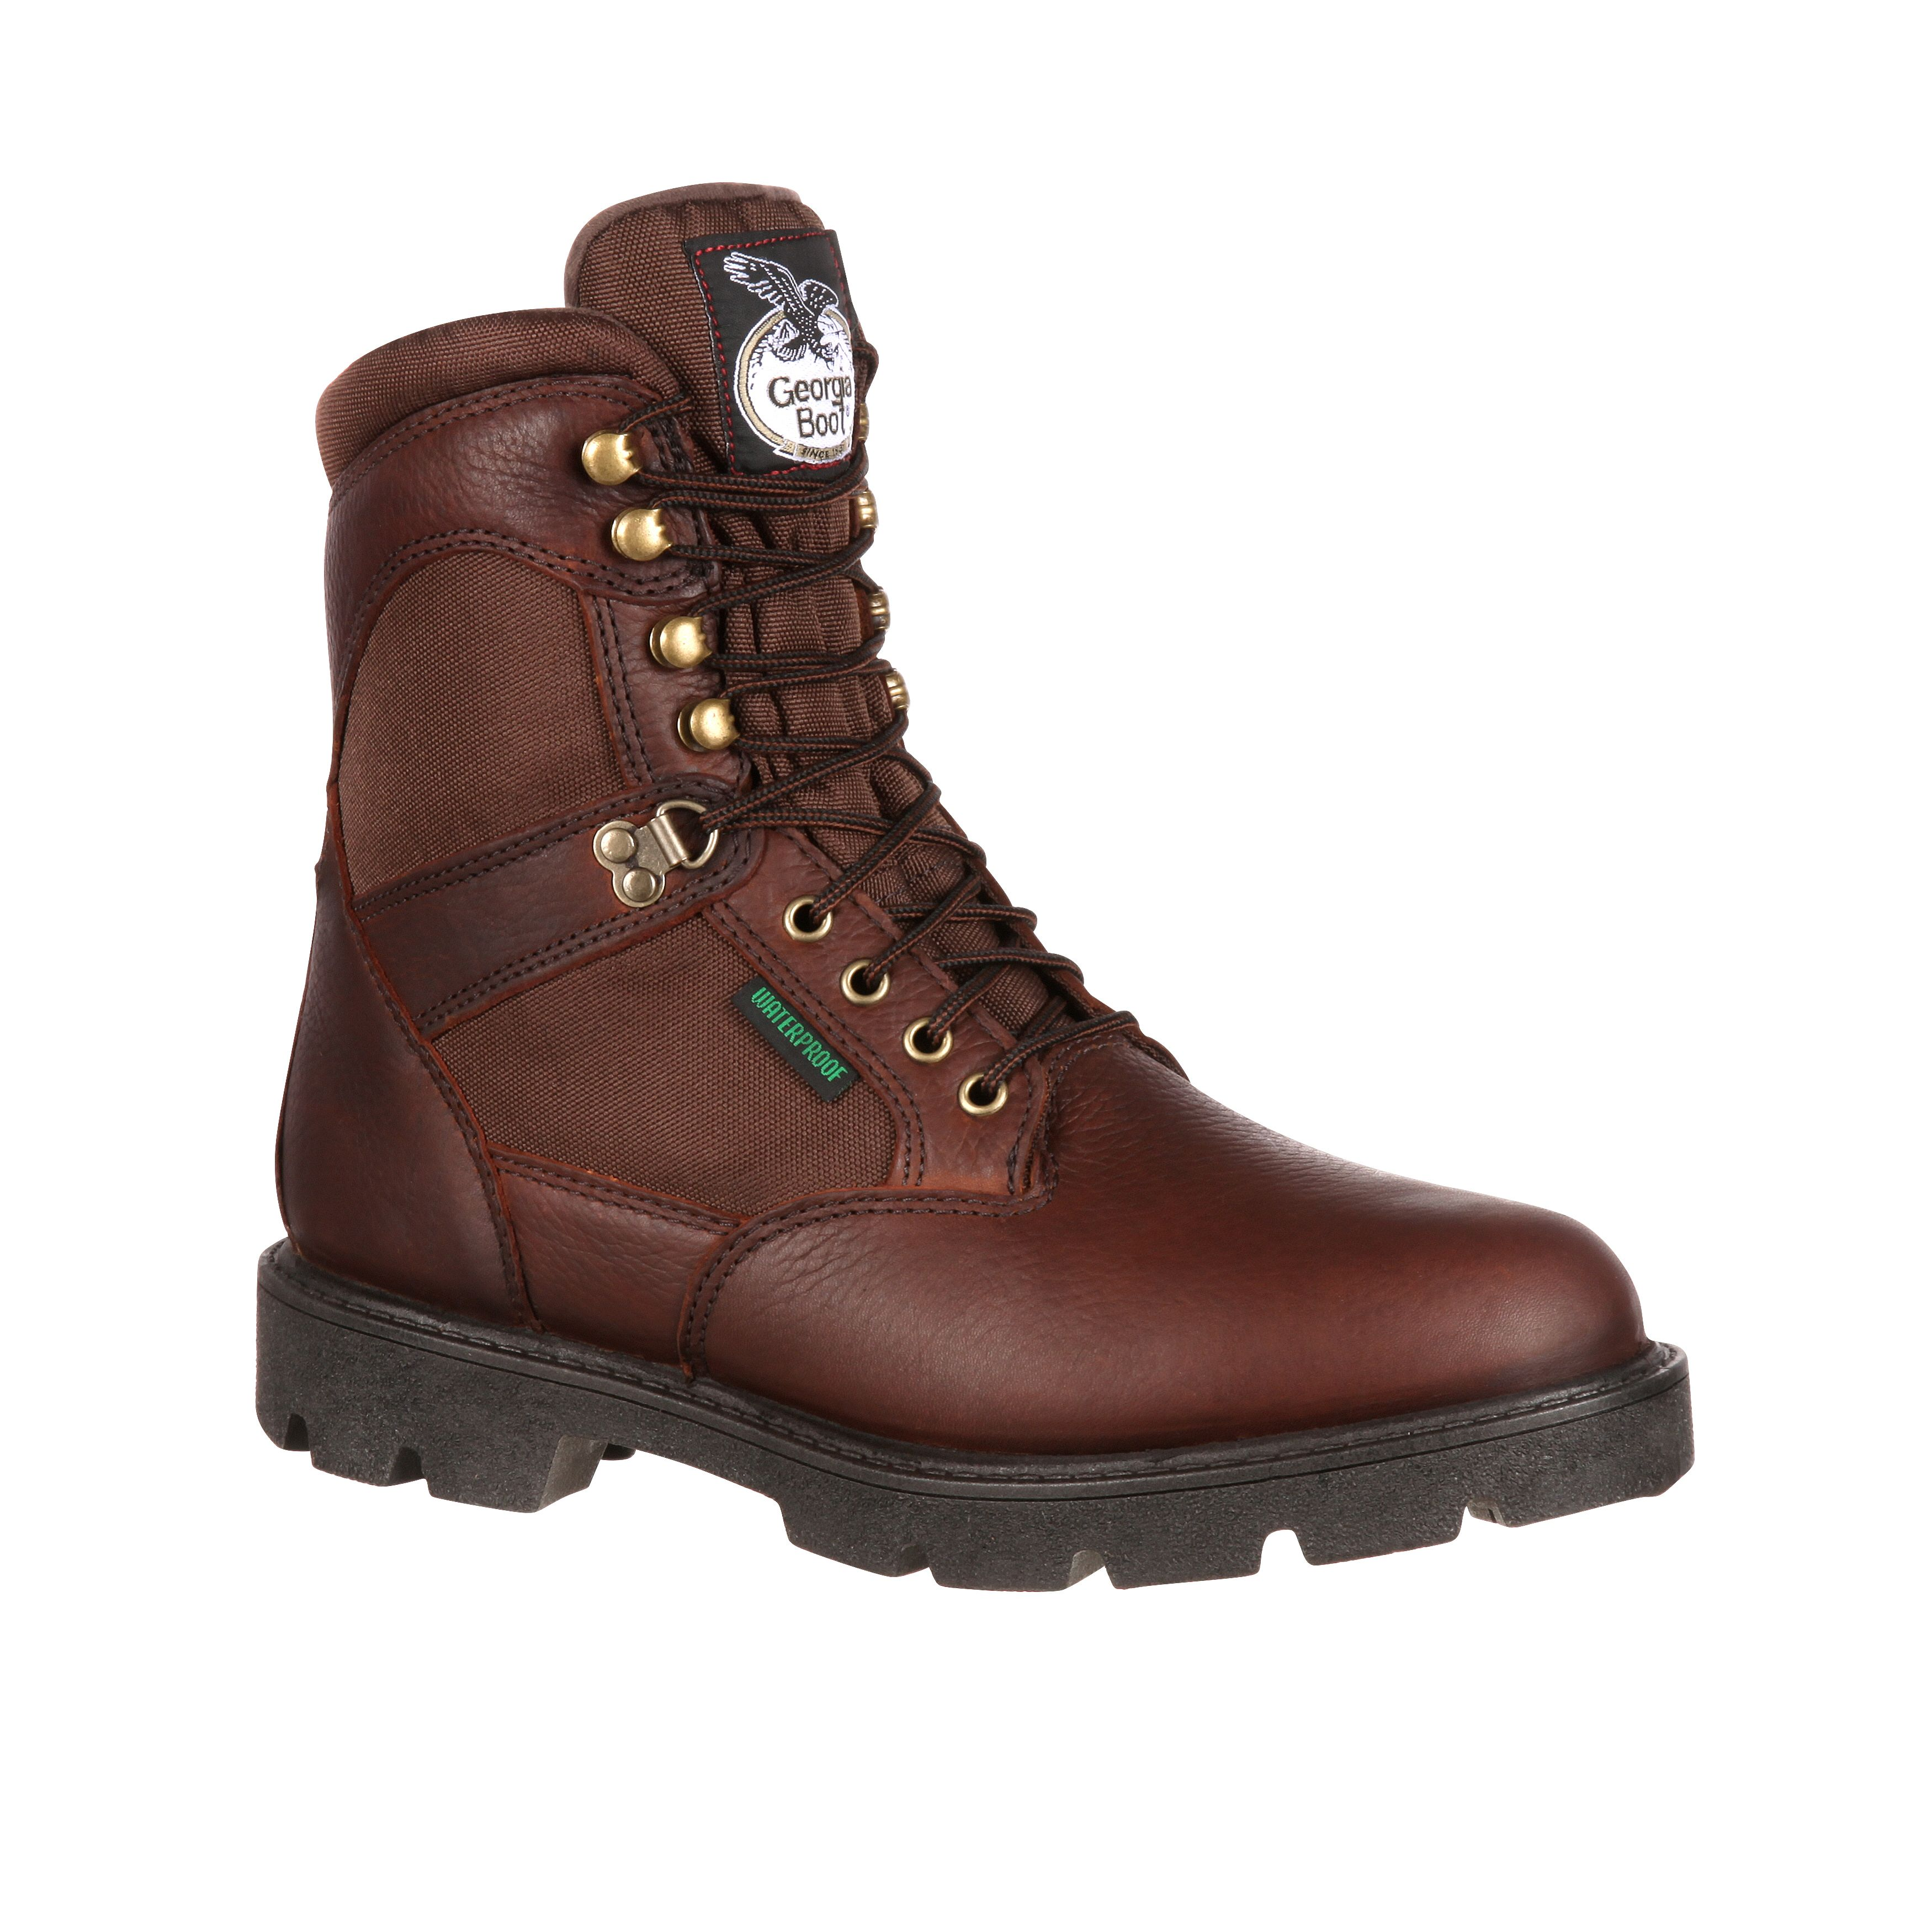 product steel boots brown tools men work most composite comforter comfortable carhartt bison shop s toe waterproof